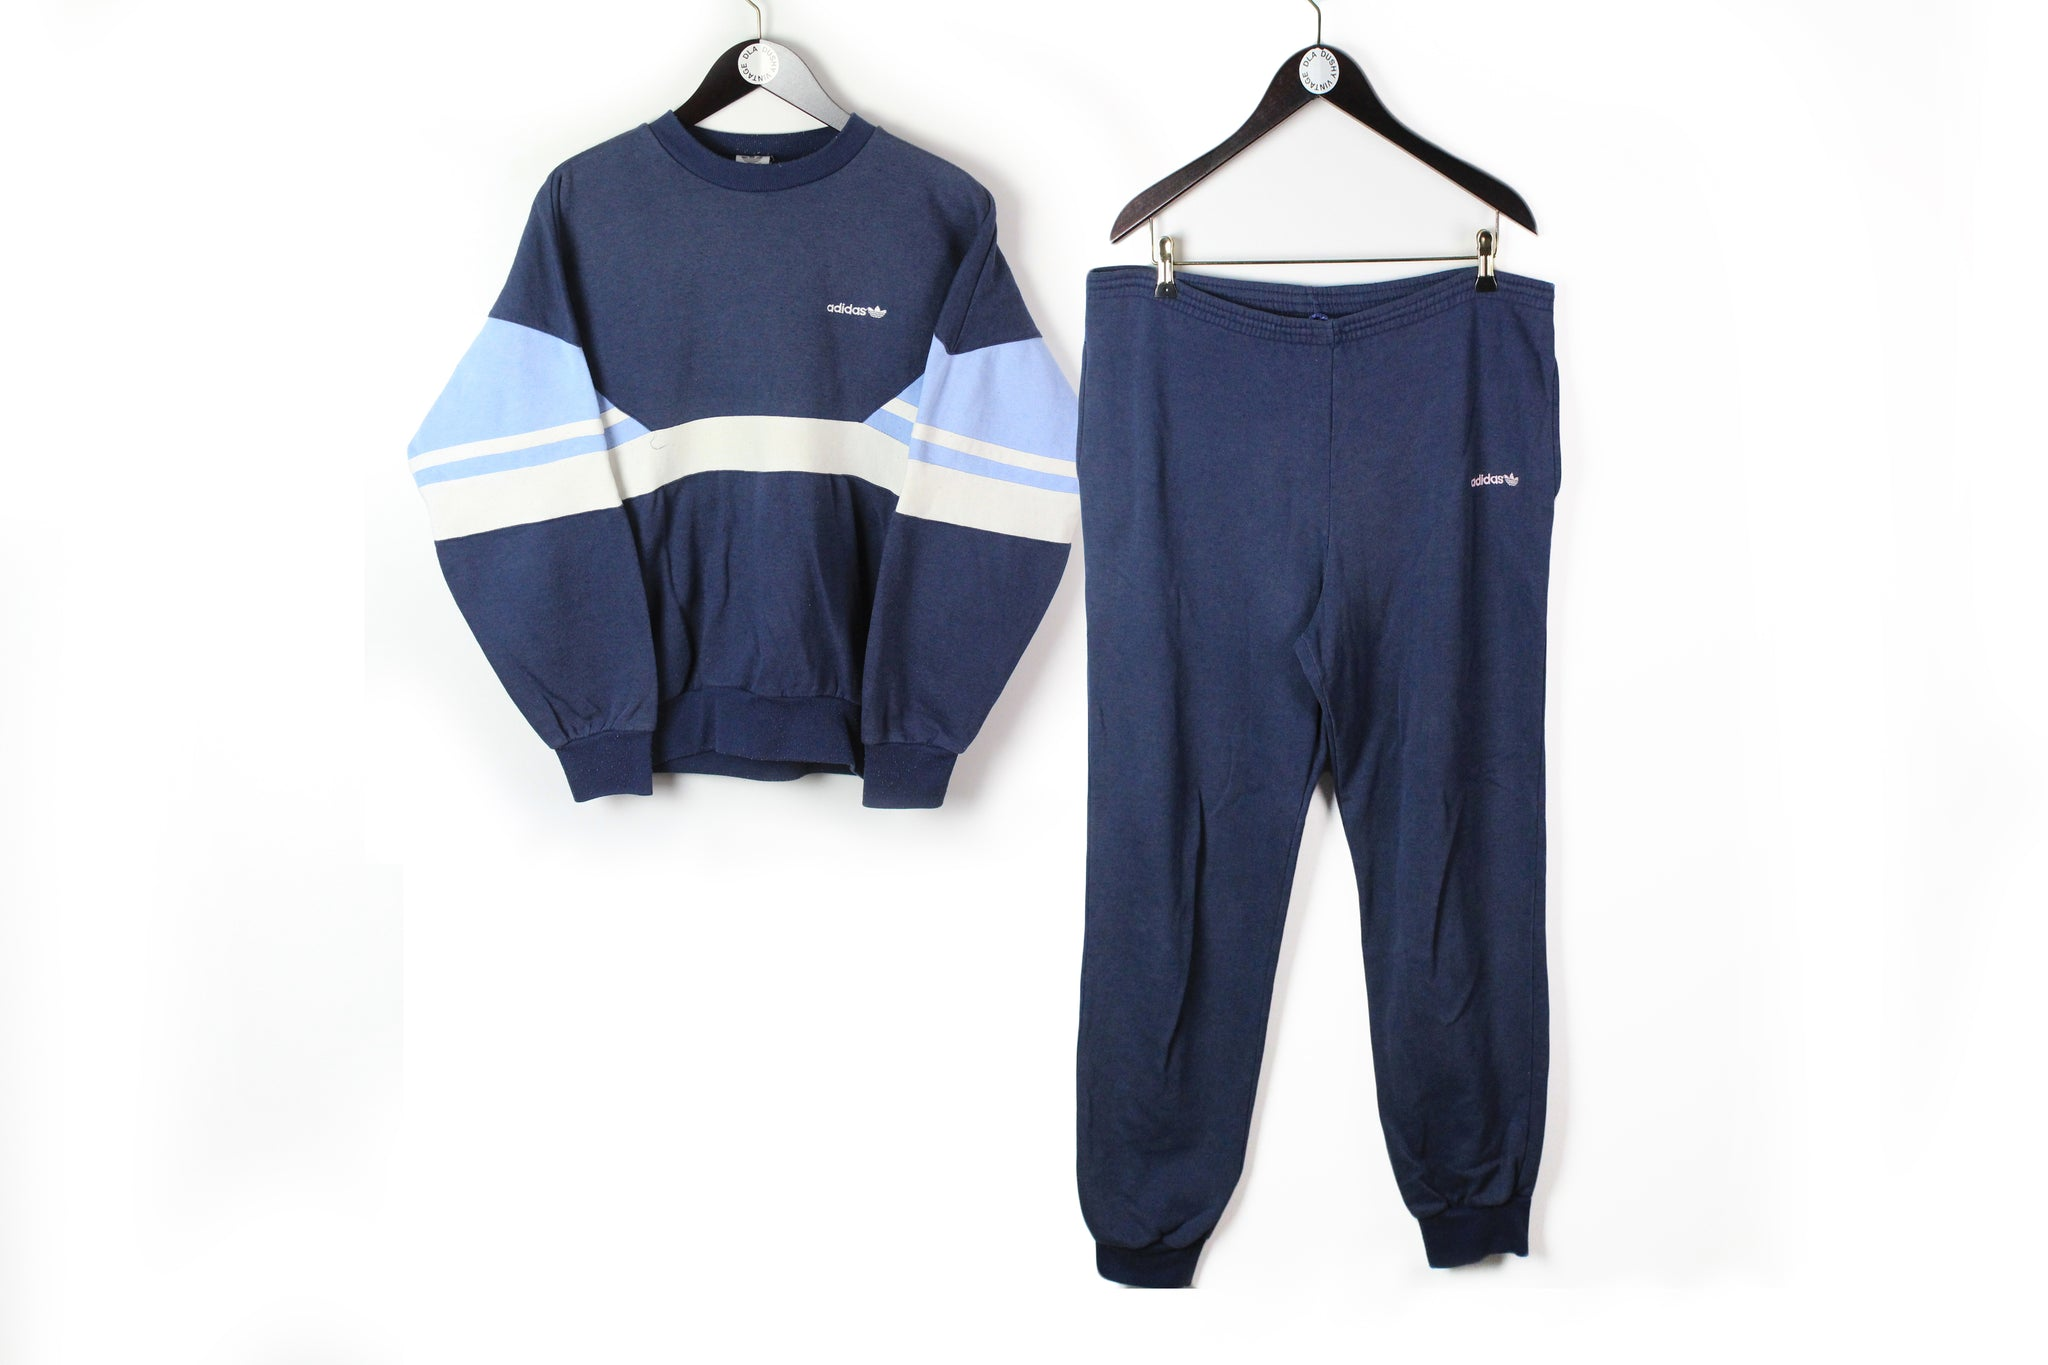 Vintage Adidas Tracksuit (Sweatshirt + Pants) Small / Medium blue 90s sport style cotton jumper and trousers athletic sport suit